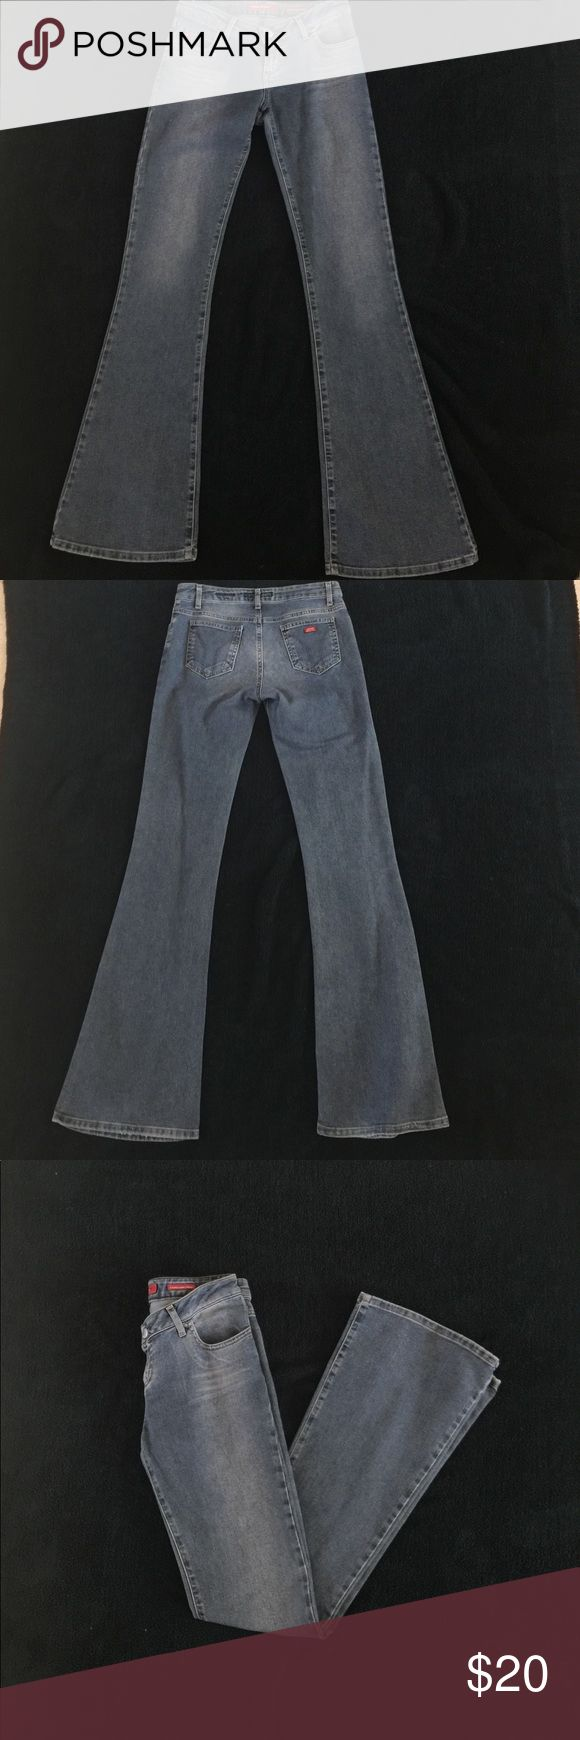 Miss Sixty Extra Low Tommy Jeans Classic Miss Sixty Extra Low Tommy Boot Cut Jeans. Medium Wash. Size 28. Miss Sixty Jeans Boot Cut